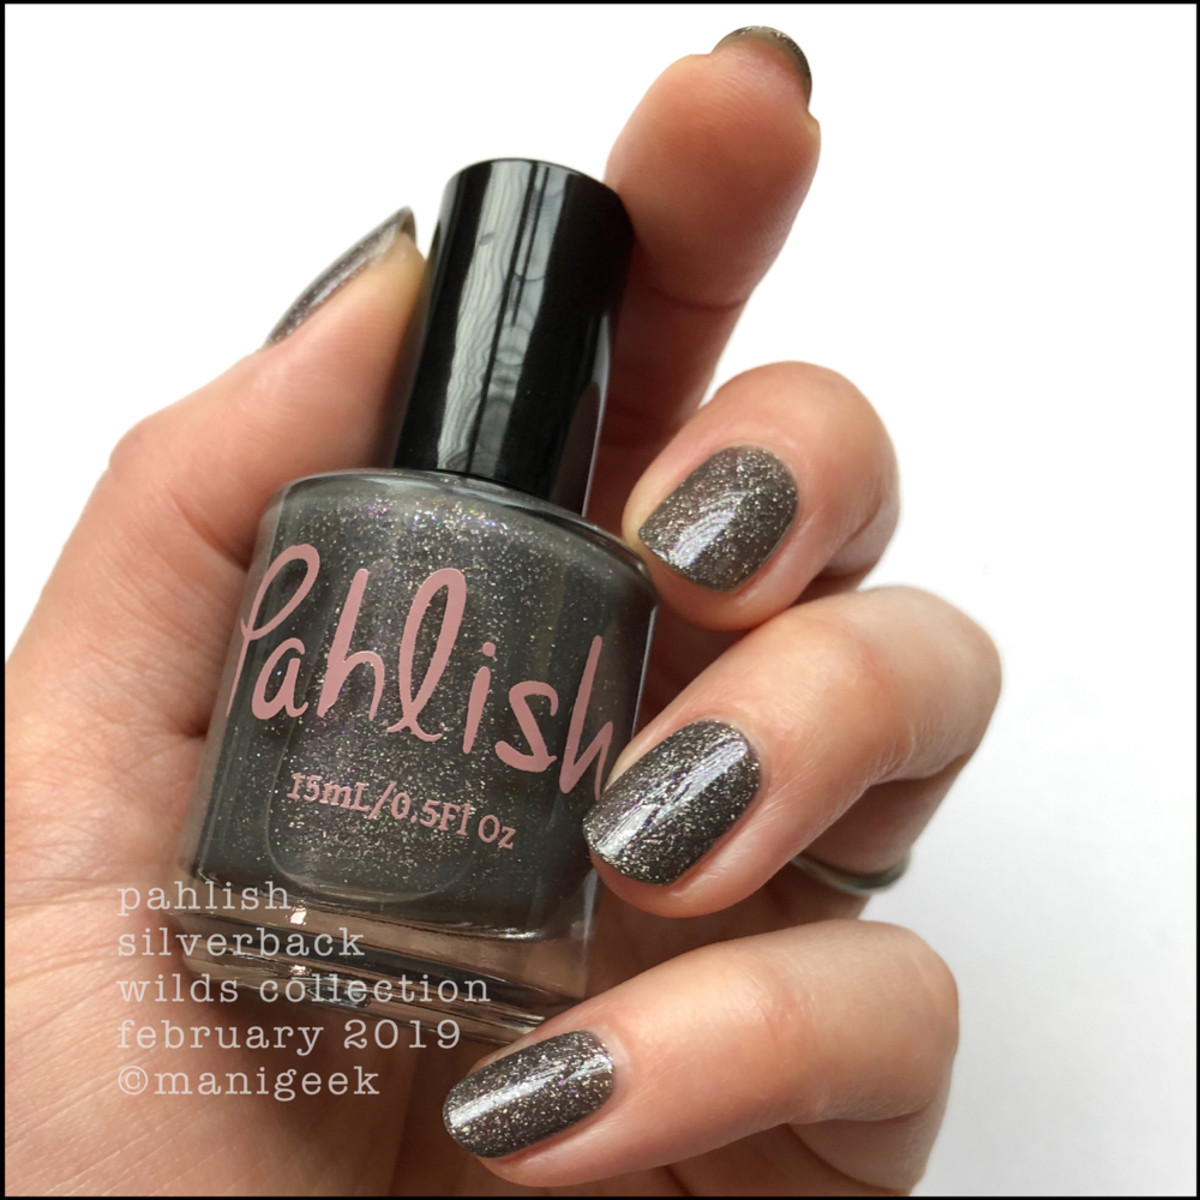 Pahlish Silverback - Pahlish Wilds Collection Feb 2019